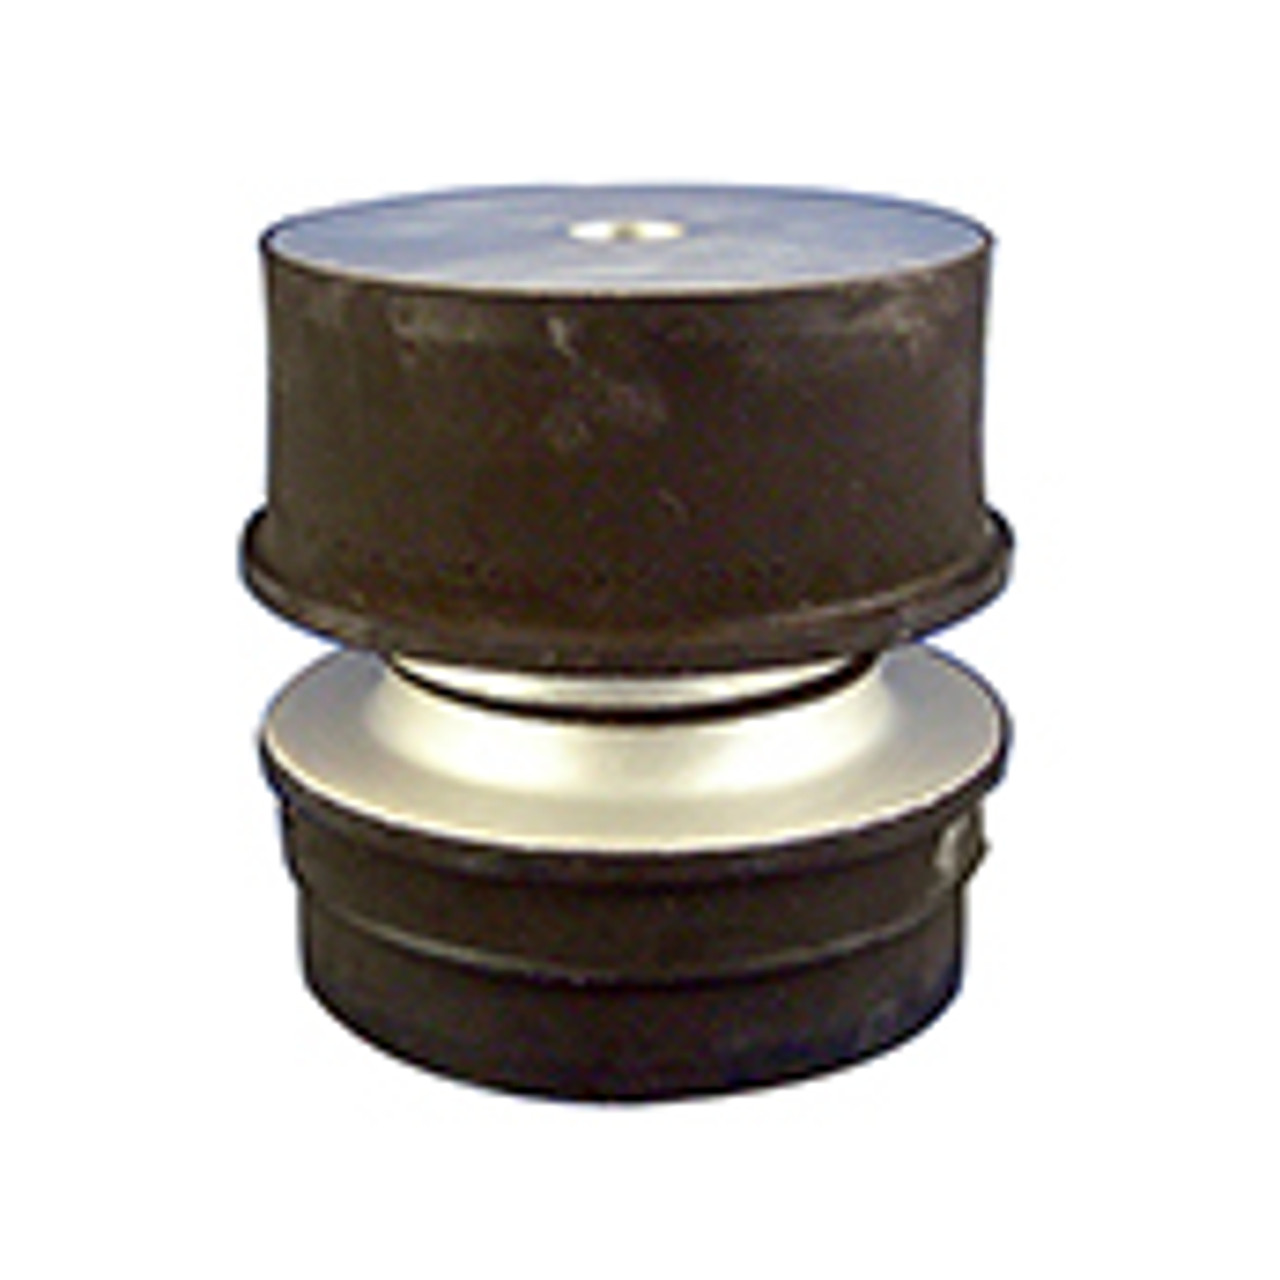 Lord J-9613-72 Aircraft Engine Shock Mount - Part#: J9613-72by LORD LORD engine mounts are available for many aircraft, including the most produced general aviation aircraft models, such as the Cessna 152, Cessna 172, Cessna 182, Piper PA-28 series, and many more.